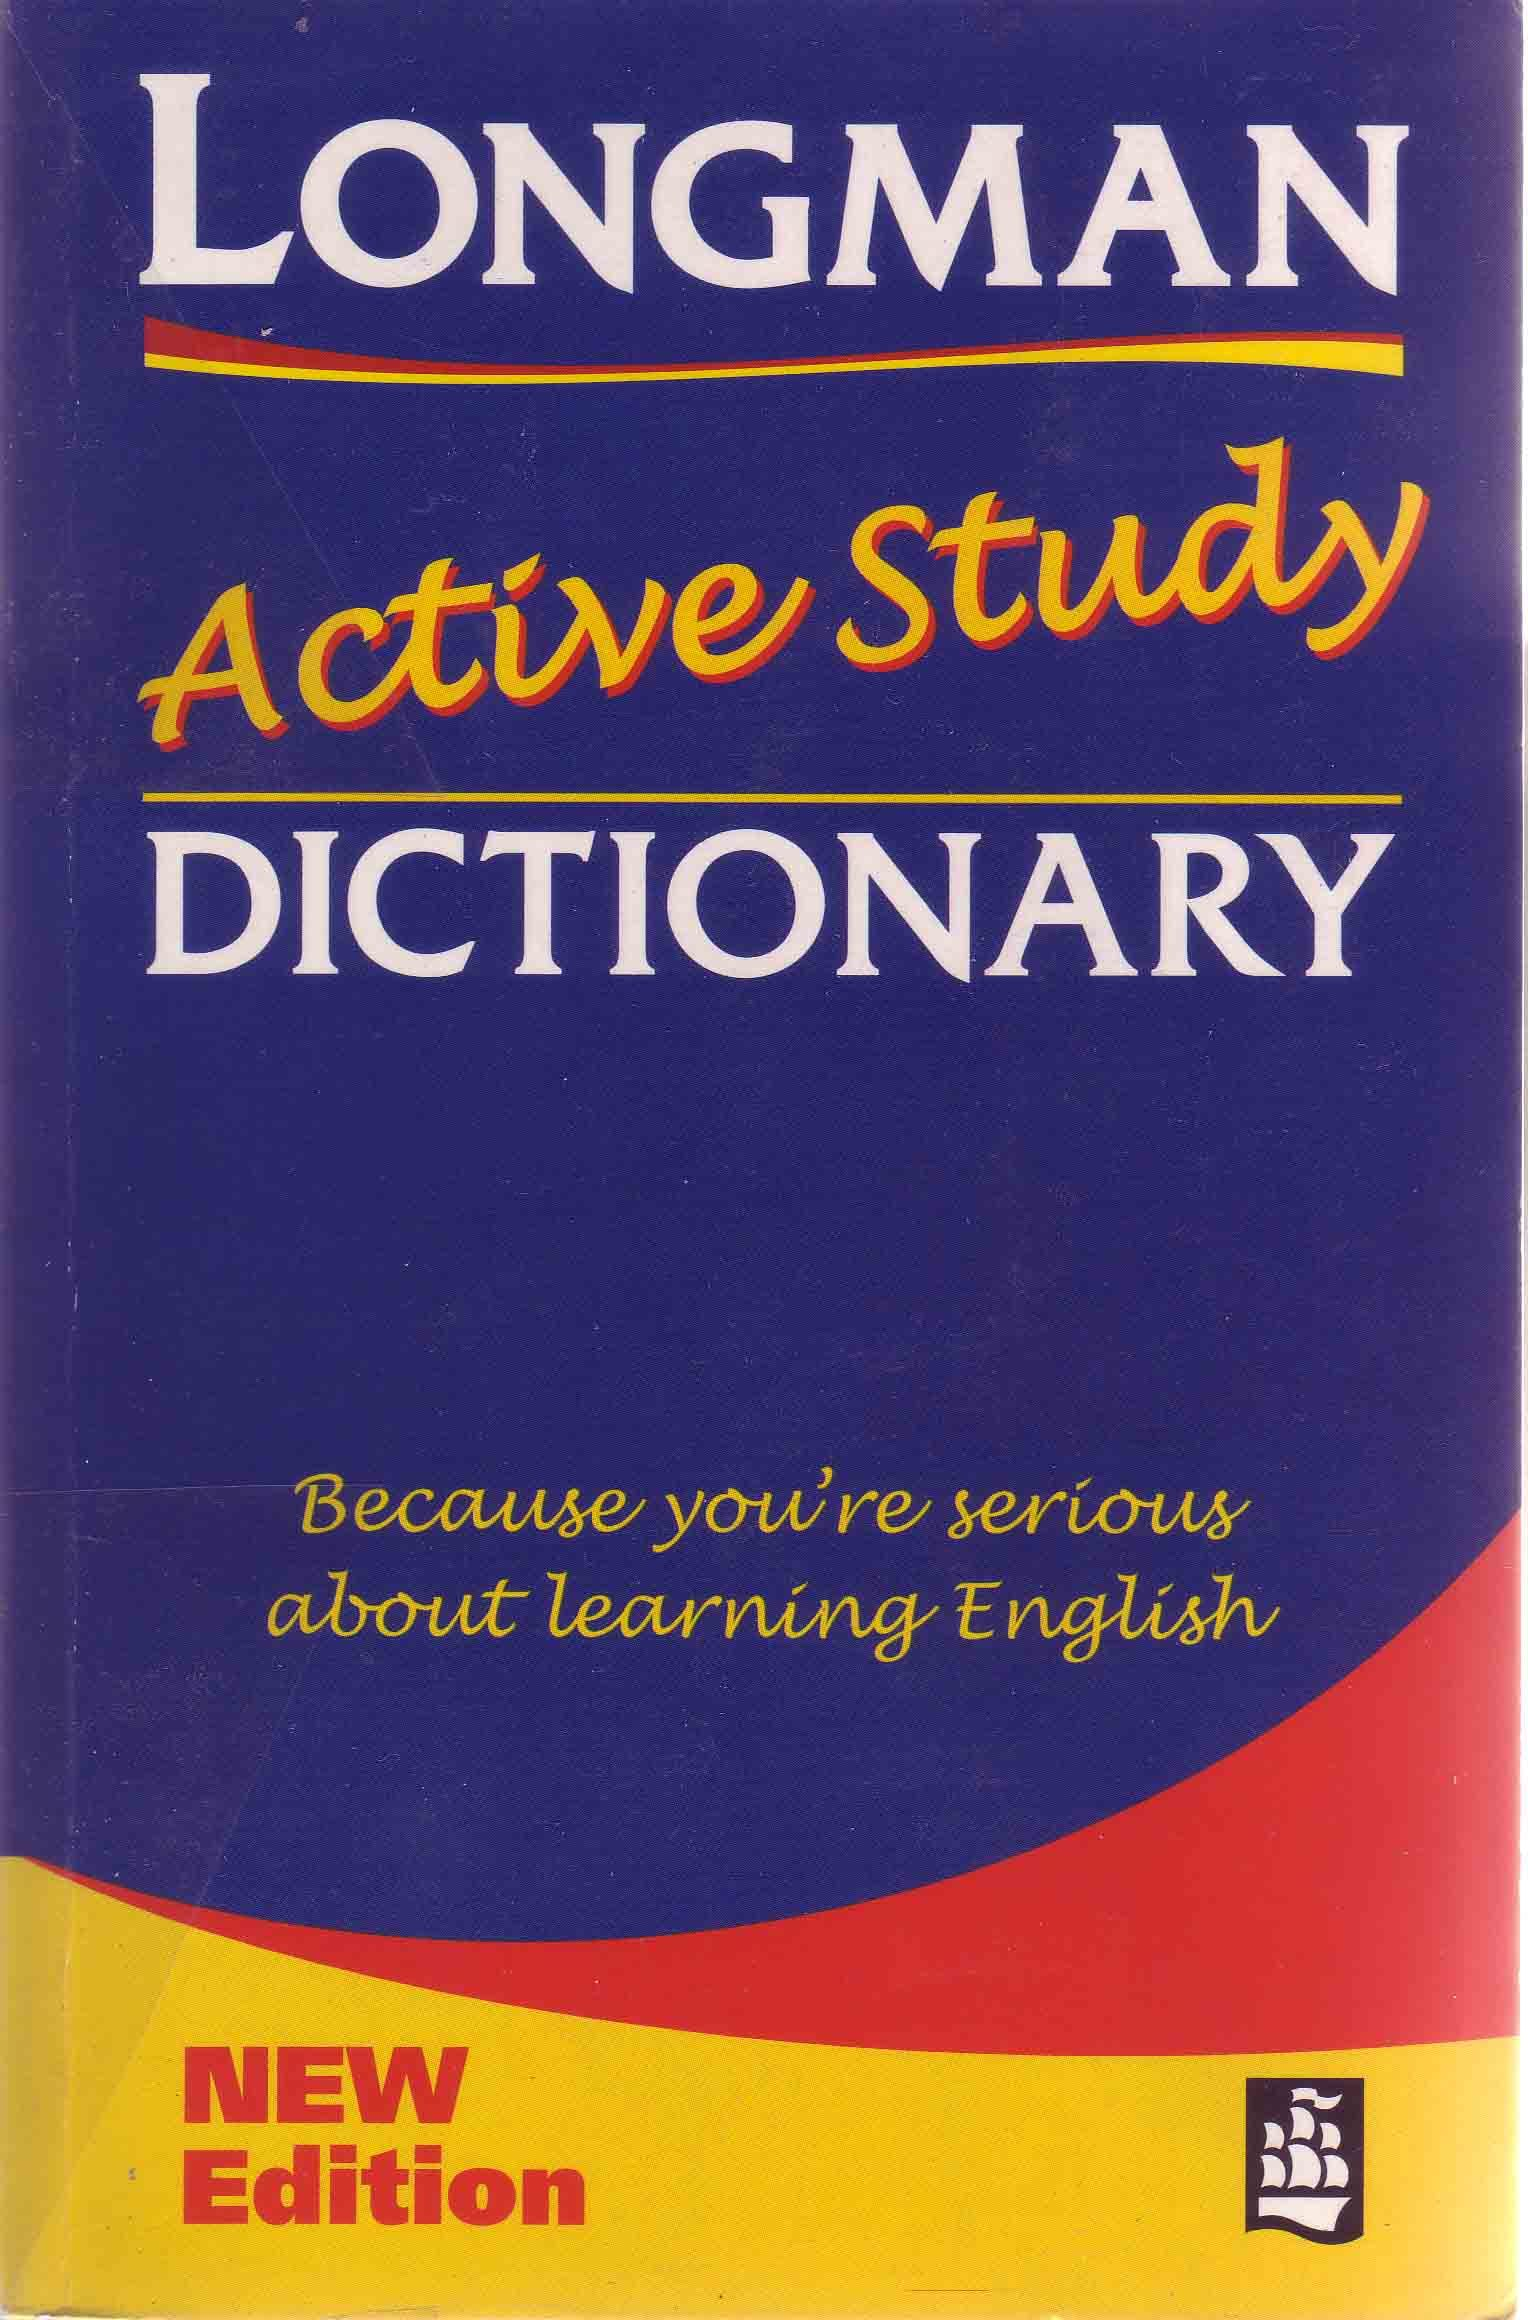 Longman Active Study Dictionary of English